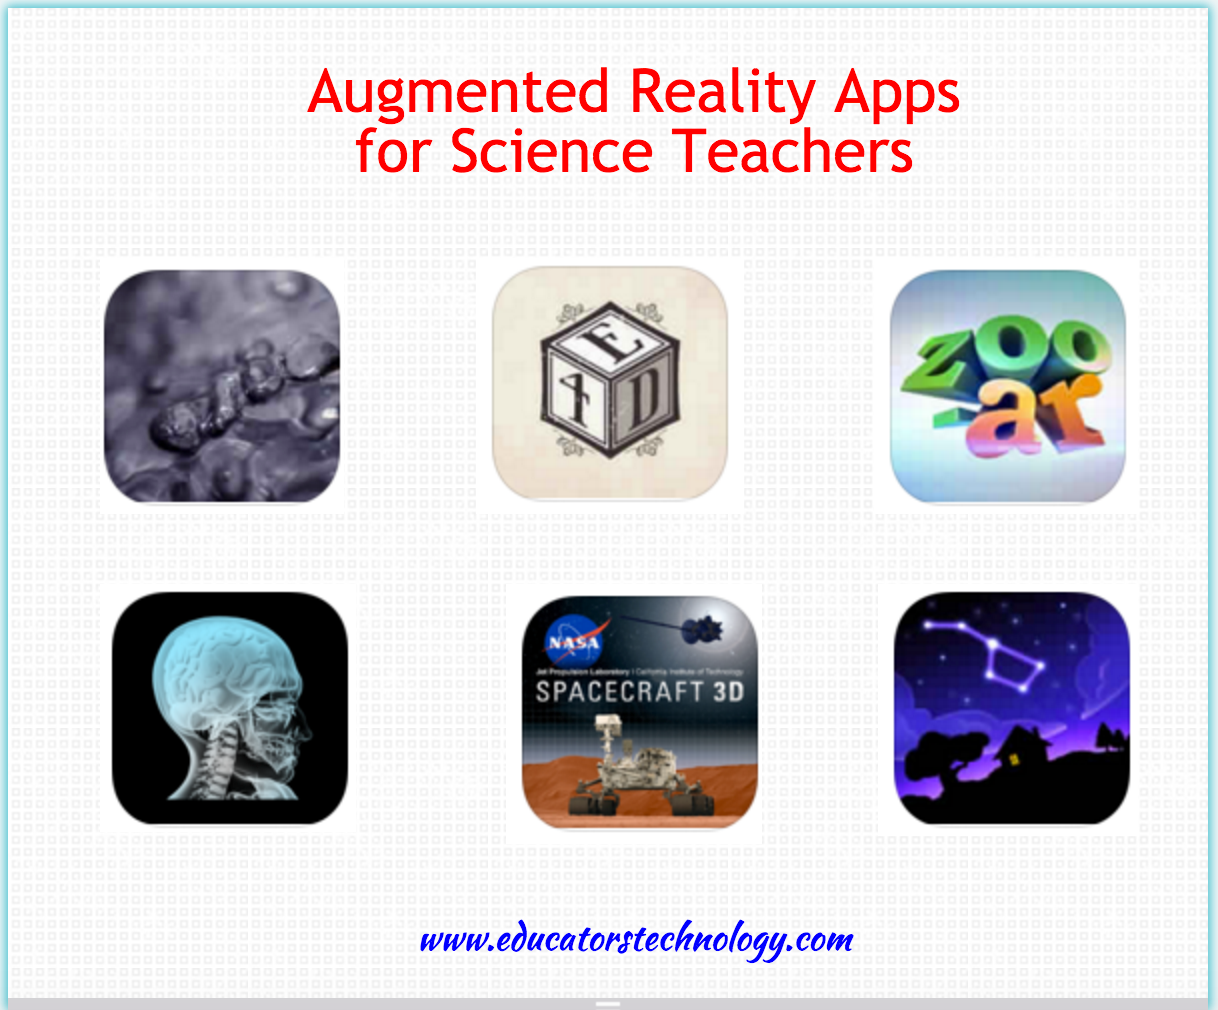 6 Outstanding Augmented Reality Apps for Science Teachers ...